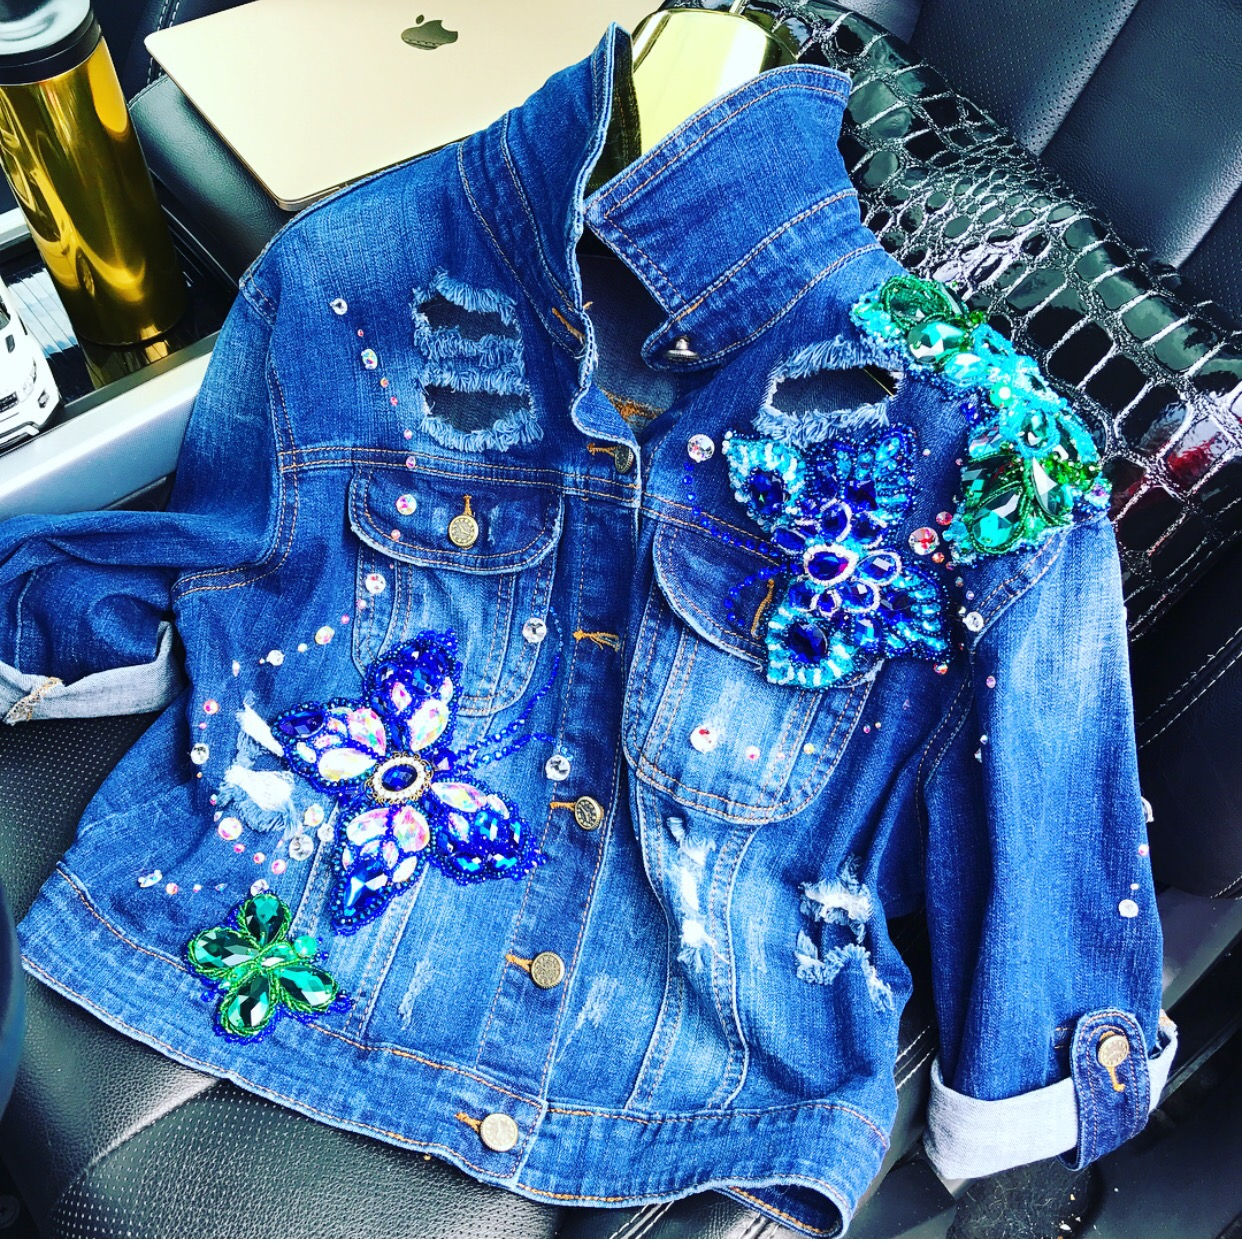 Heavily embellished denim jacket